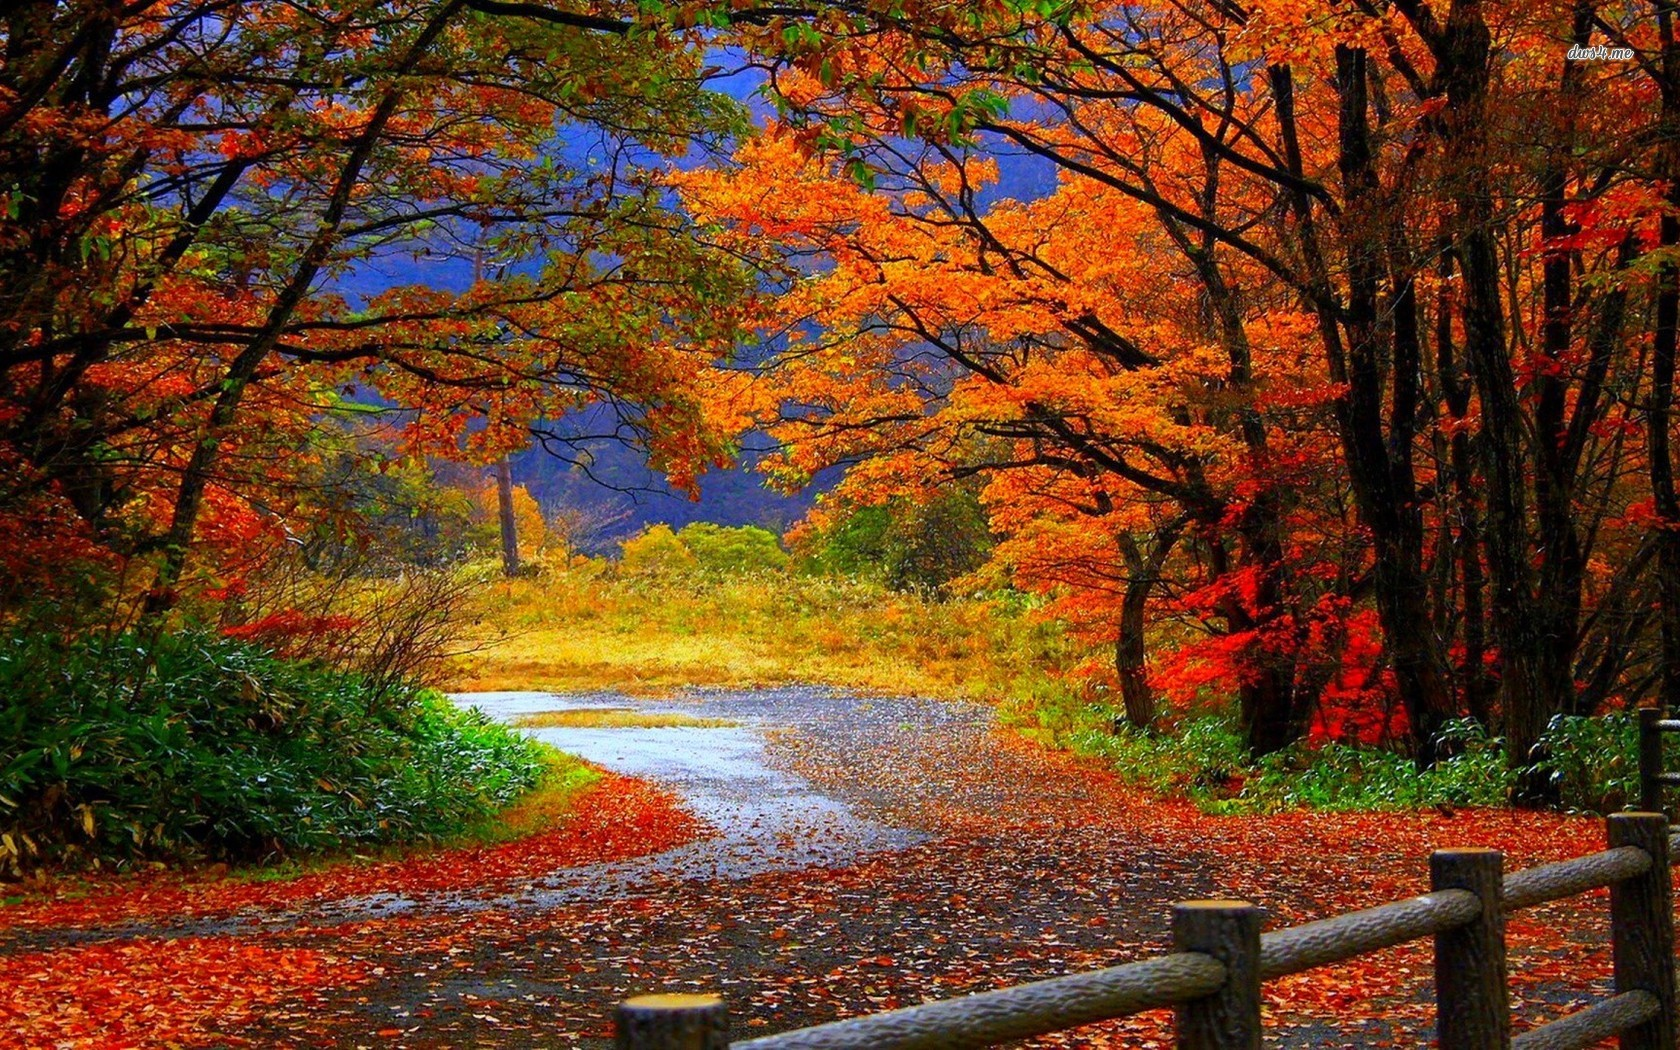 Autumn Nature Wallpapers Hd Pictures One Hd Wallpaper Pictures 1680x1050